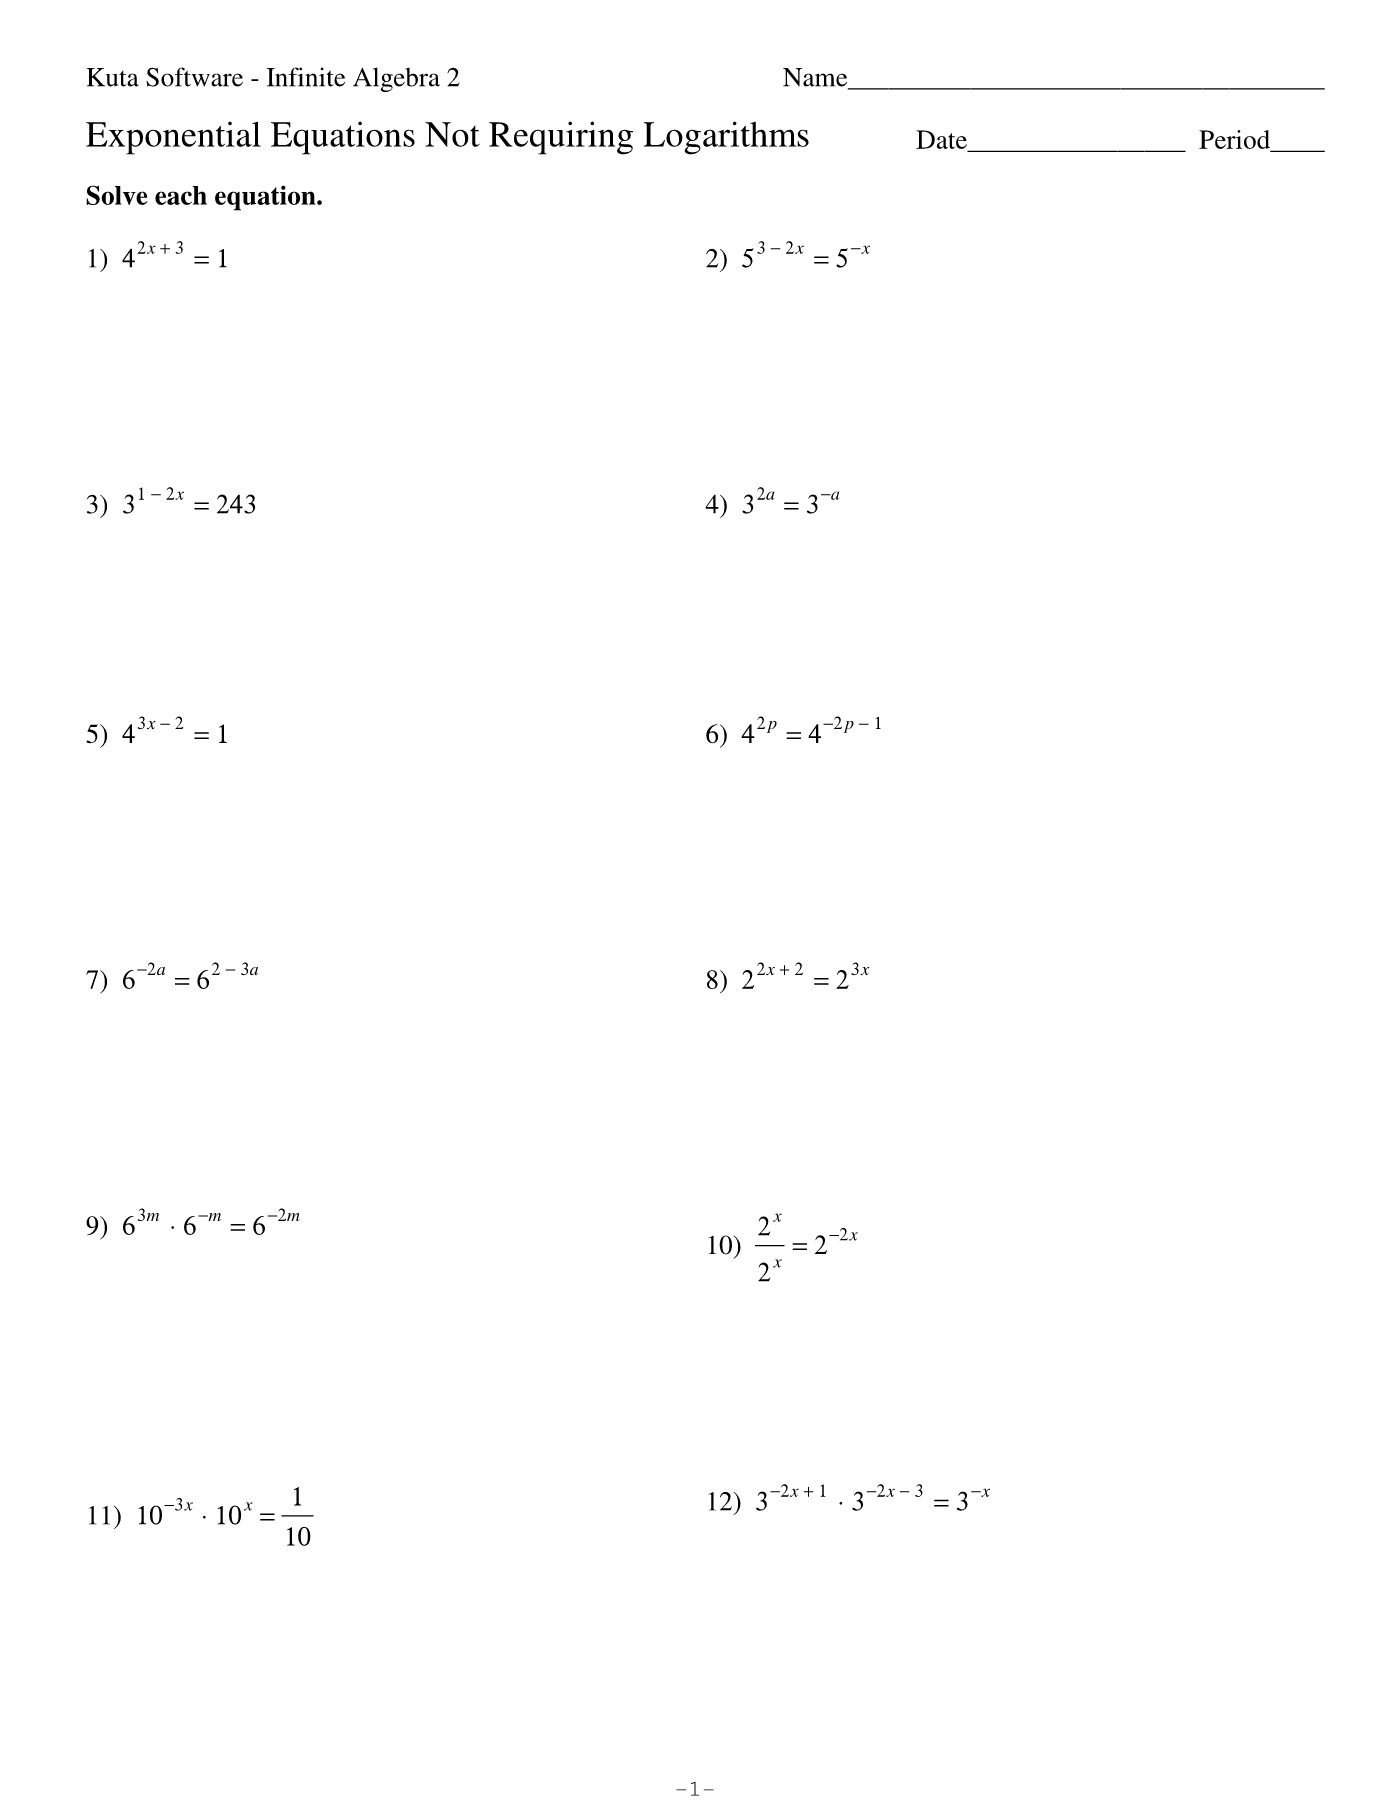 Solving Exponential Equations Without Logs Worksheet Answers